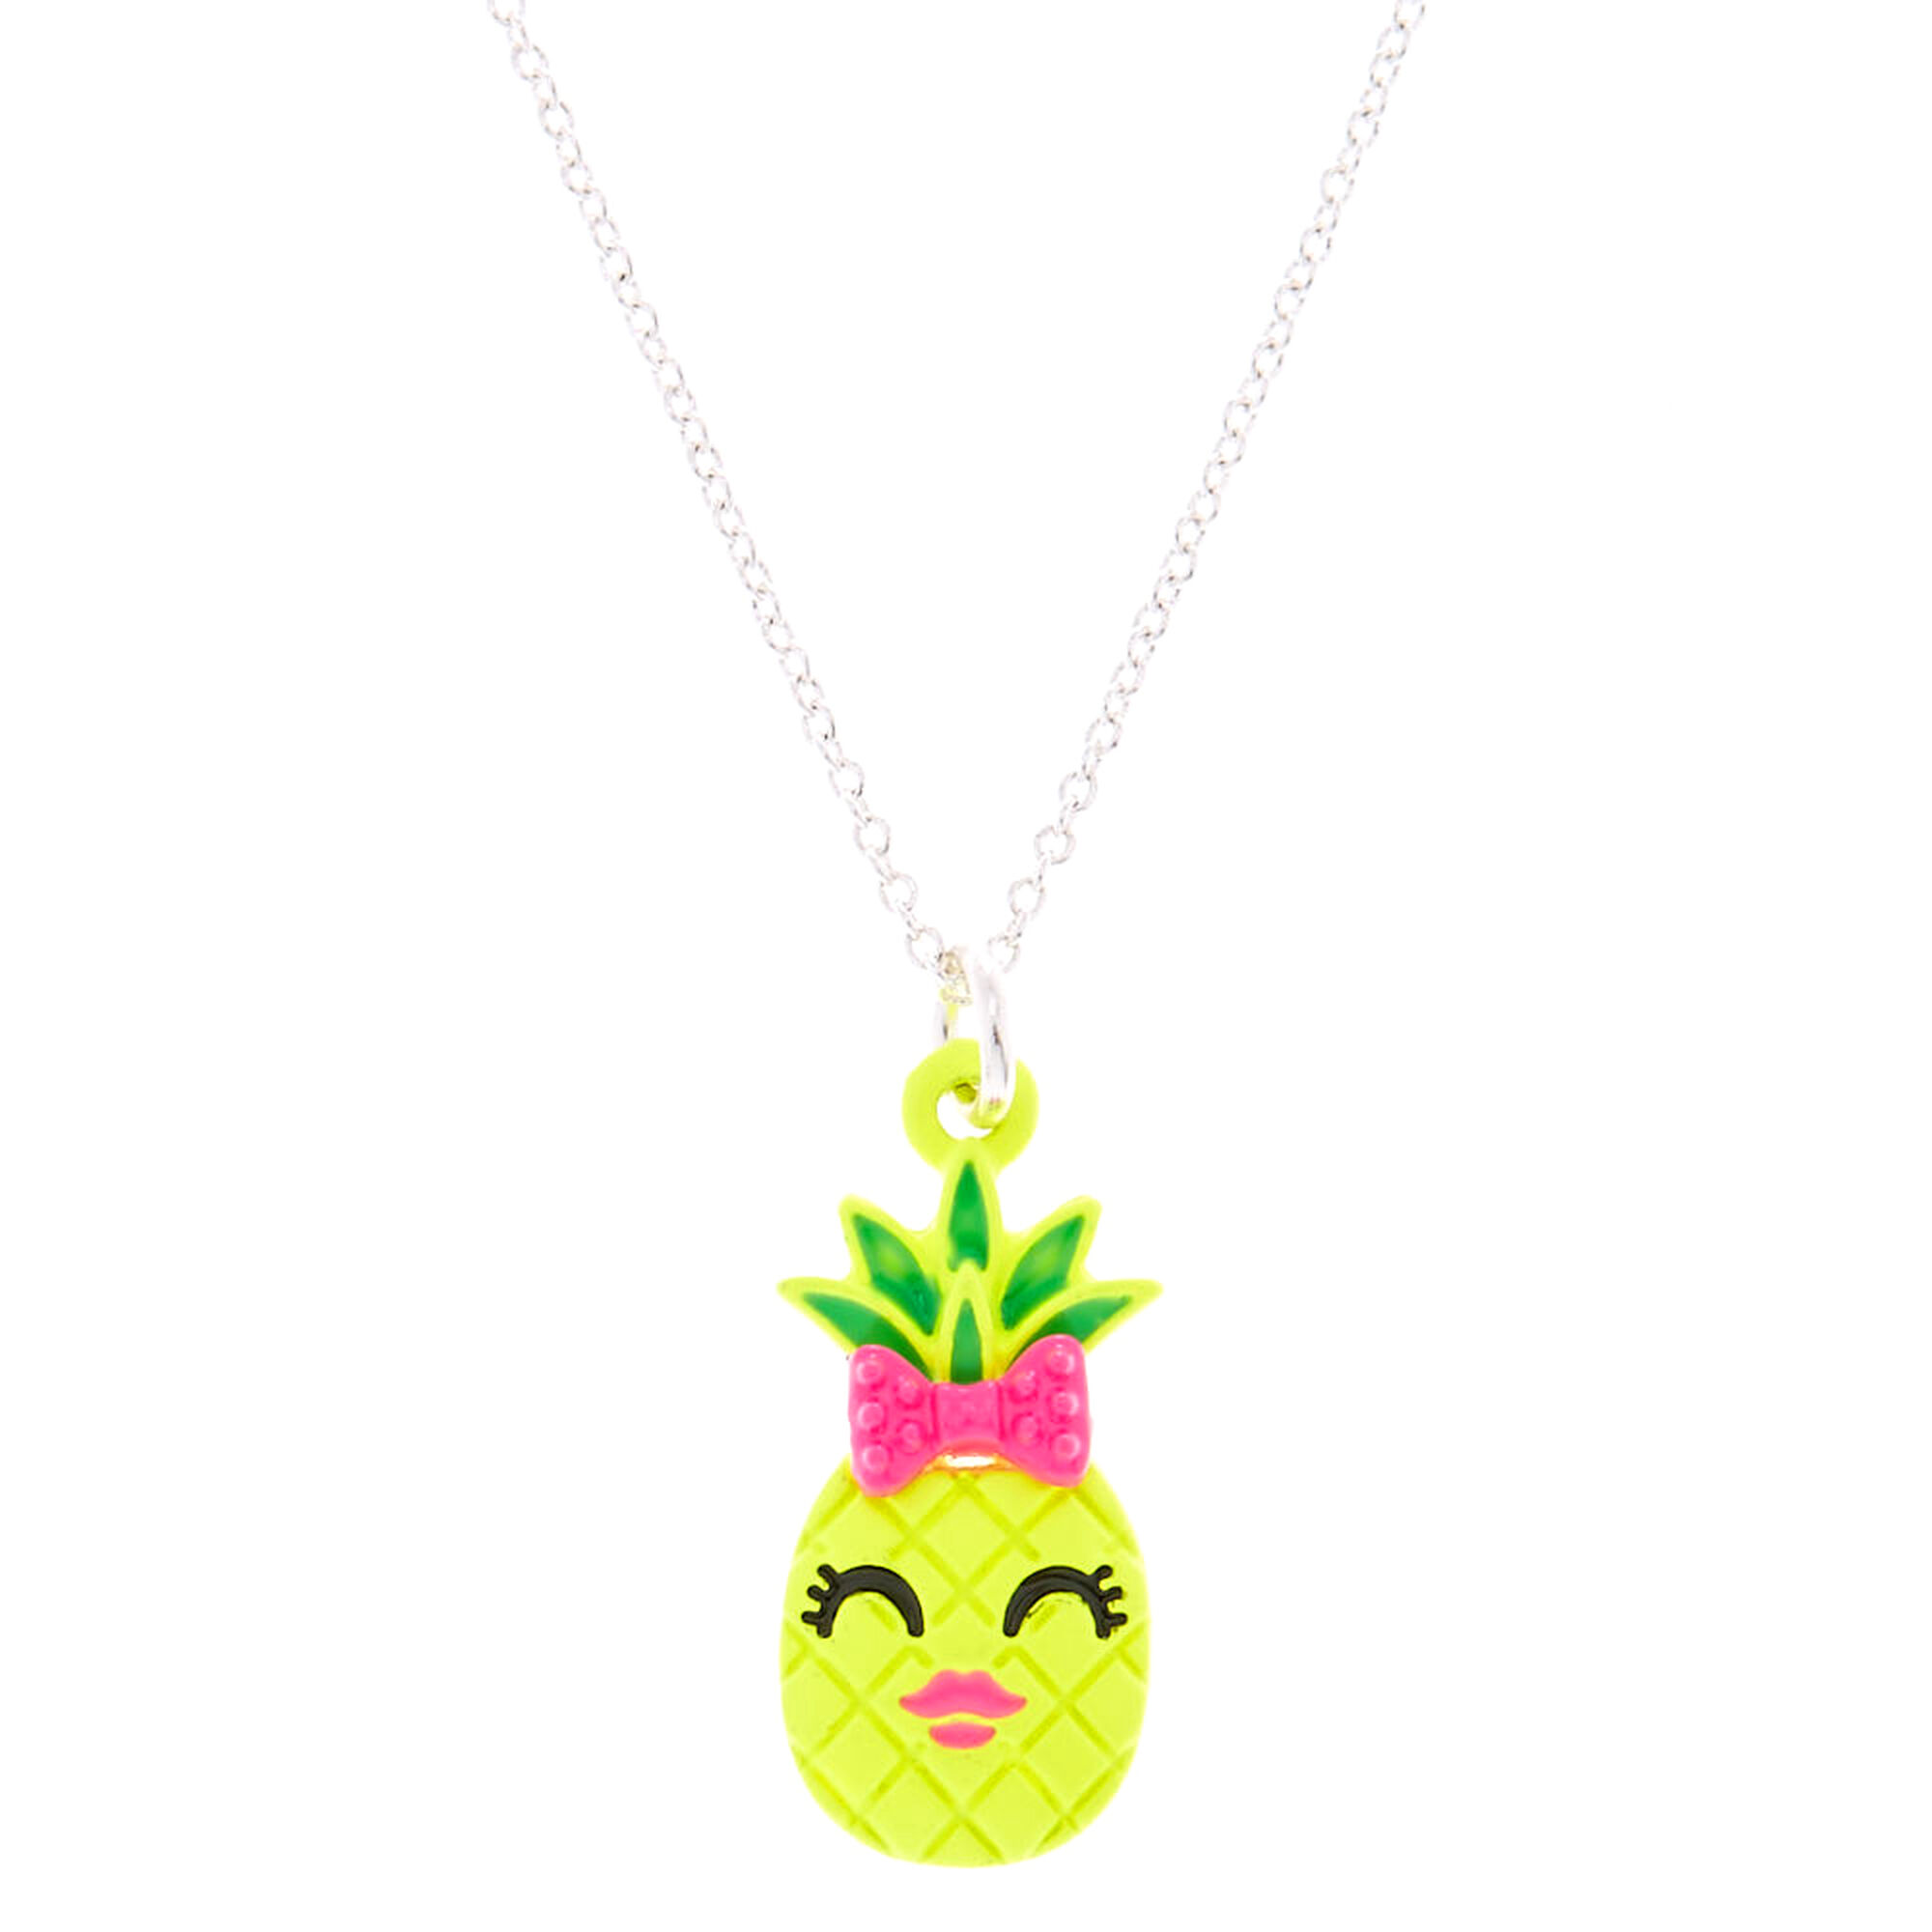 pineapple necklace products maymartininc img